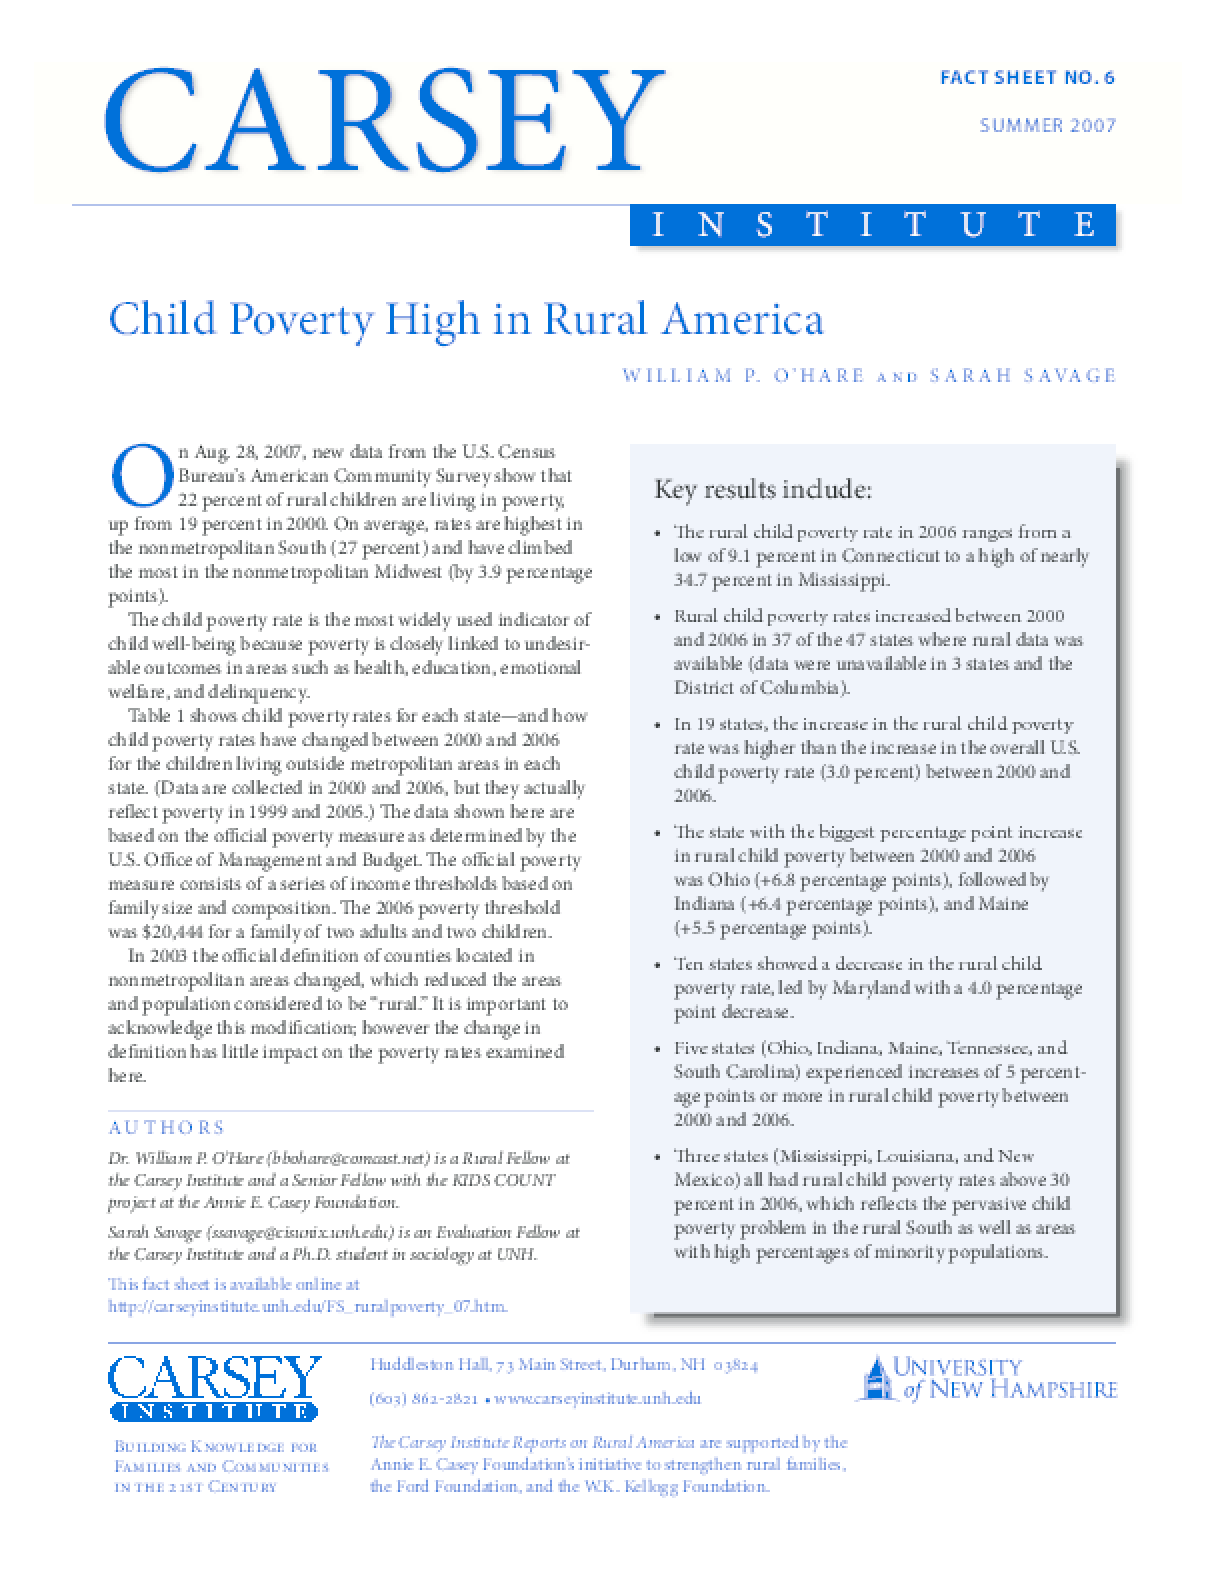 Child Poverty High in Rural America